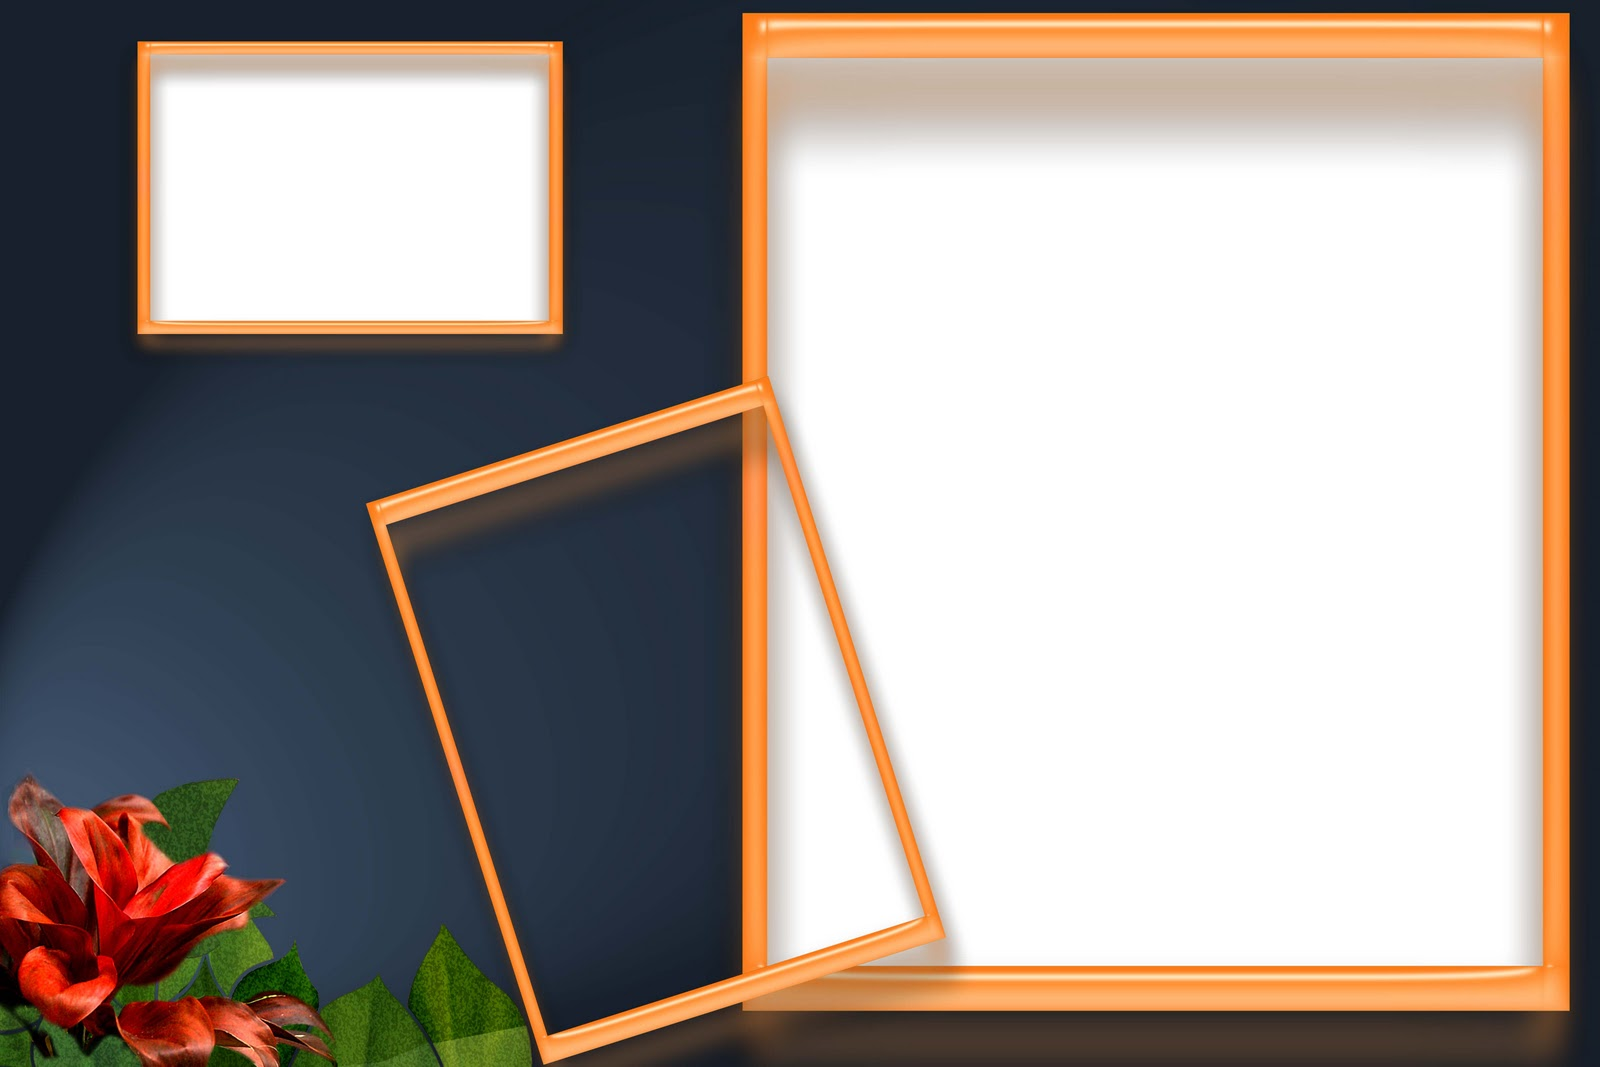 Dbdbshowfree Picture Frames Downloads Photoshop from around the worlds